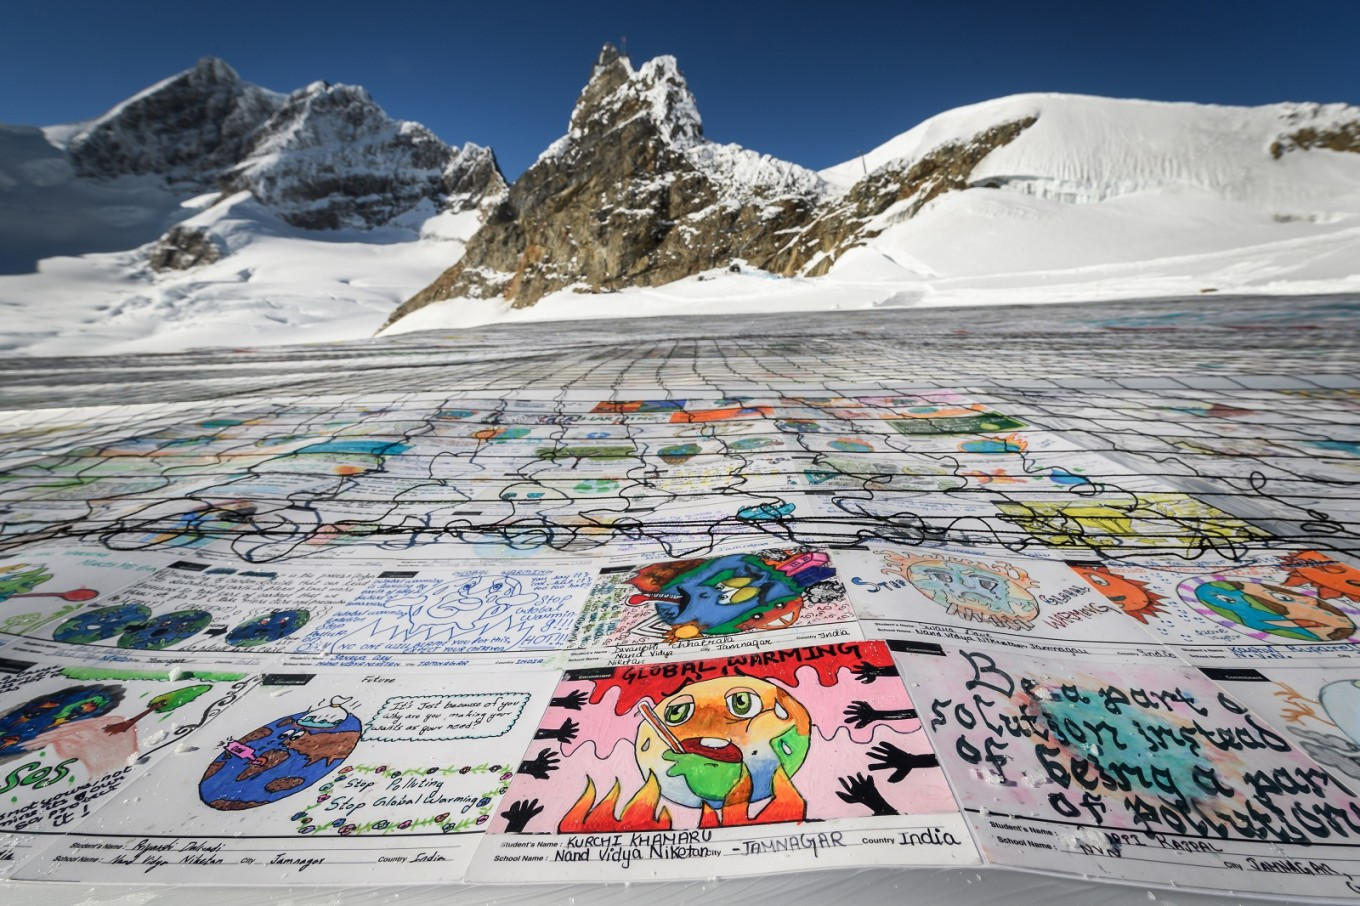 Record-breaking Alps postcard sends message against climate change